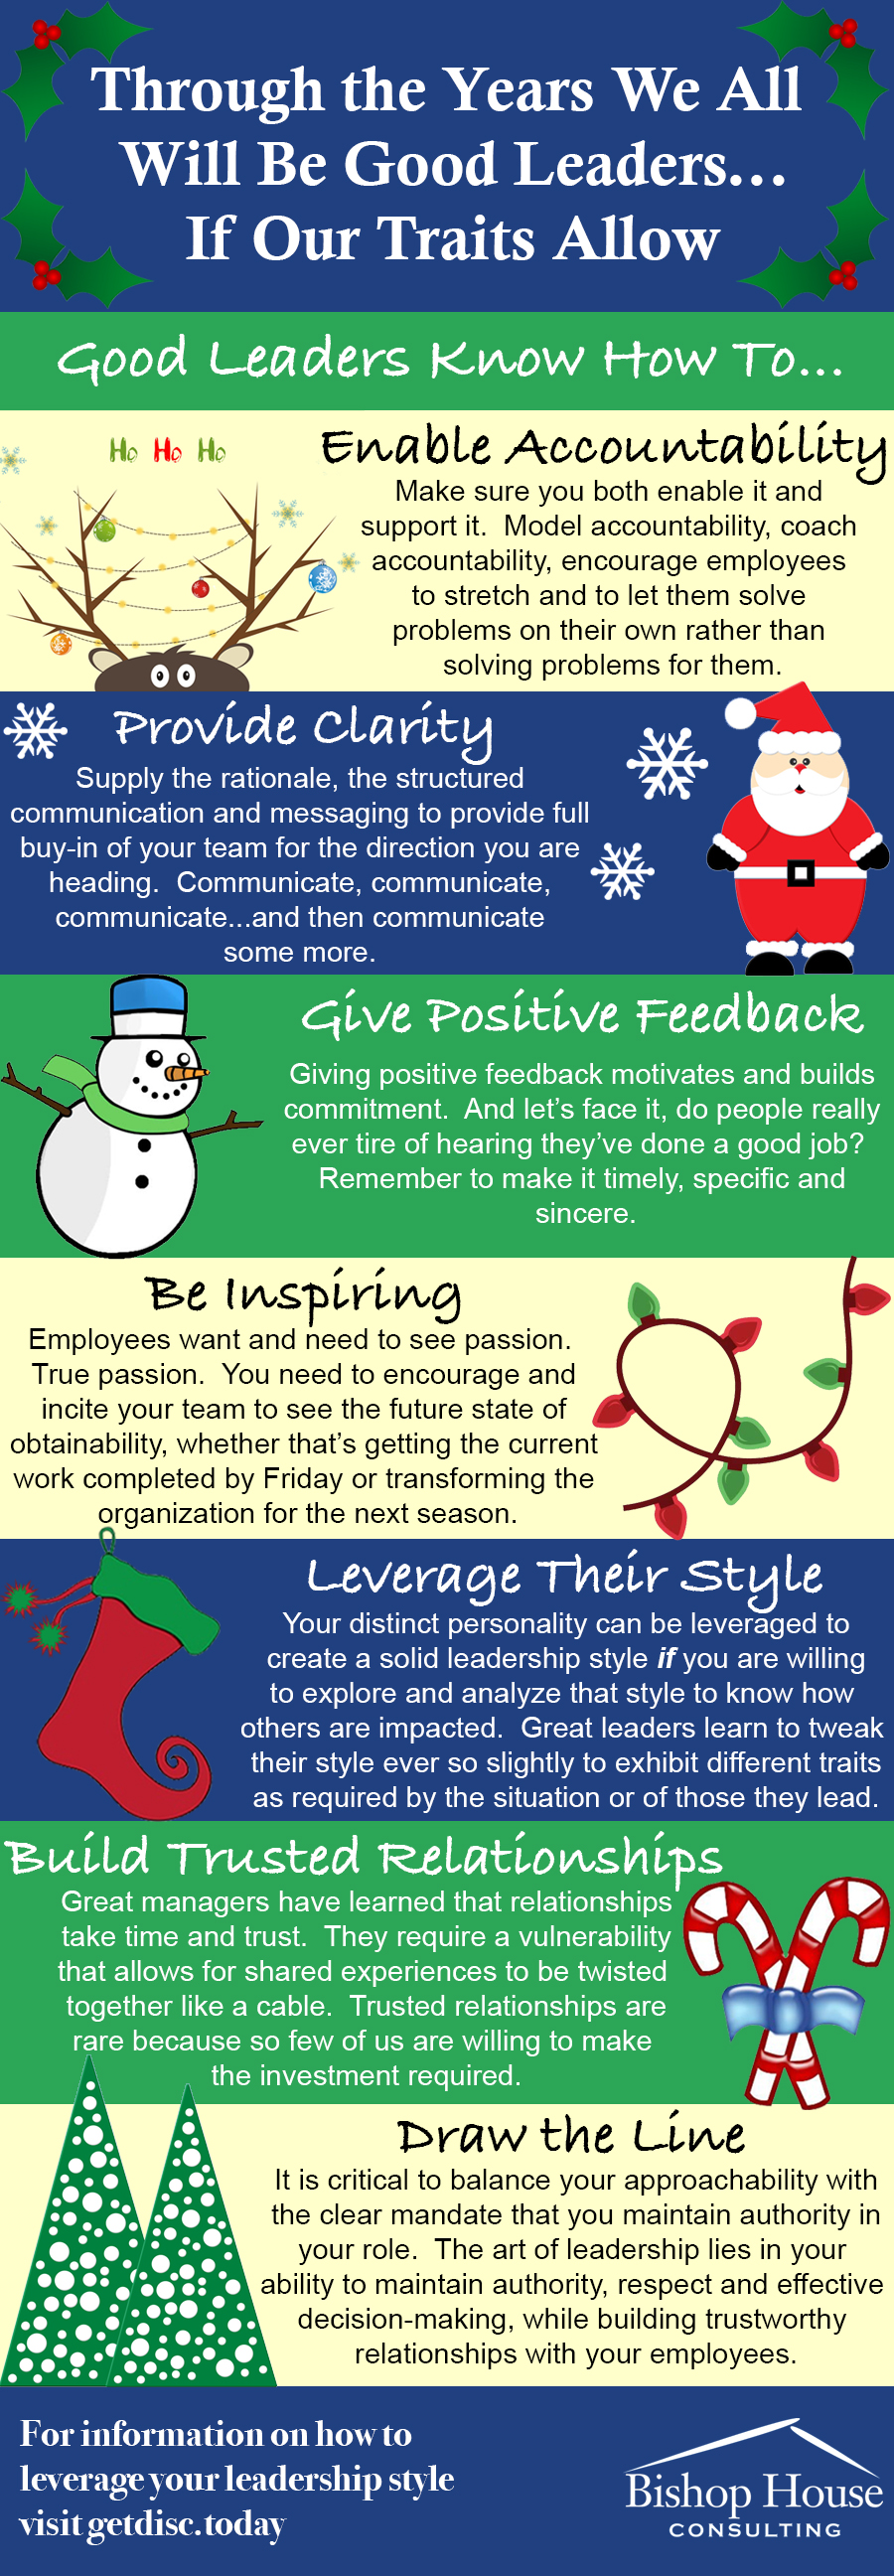 why an explicit leader is as rare as an oak in the desert traits of a good leader holiday infographic